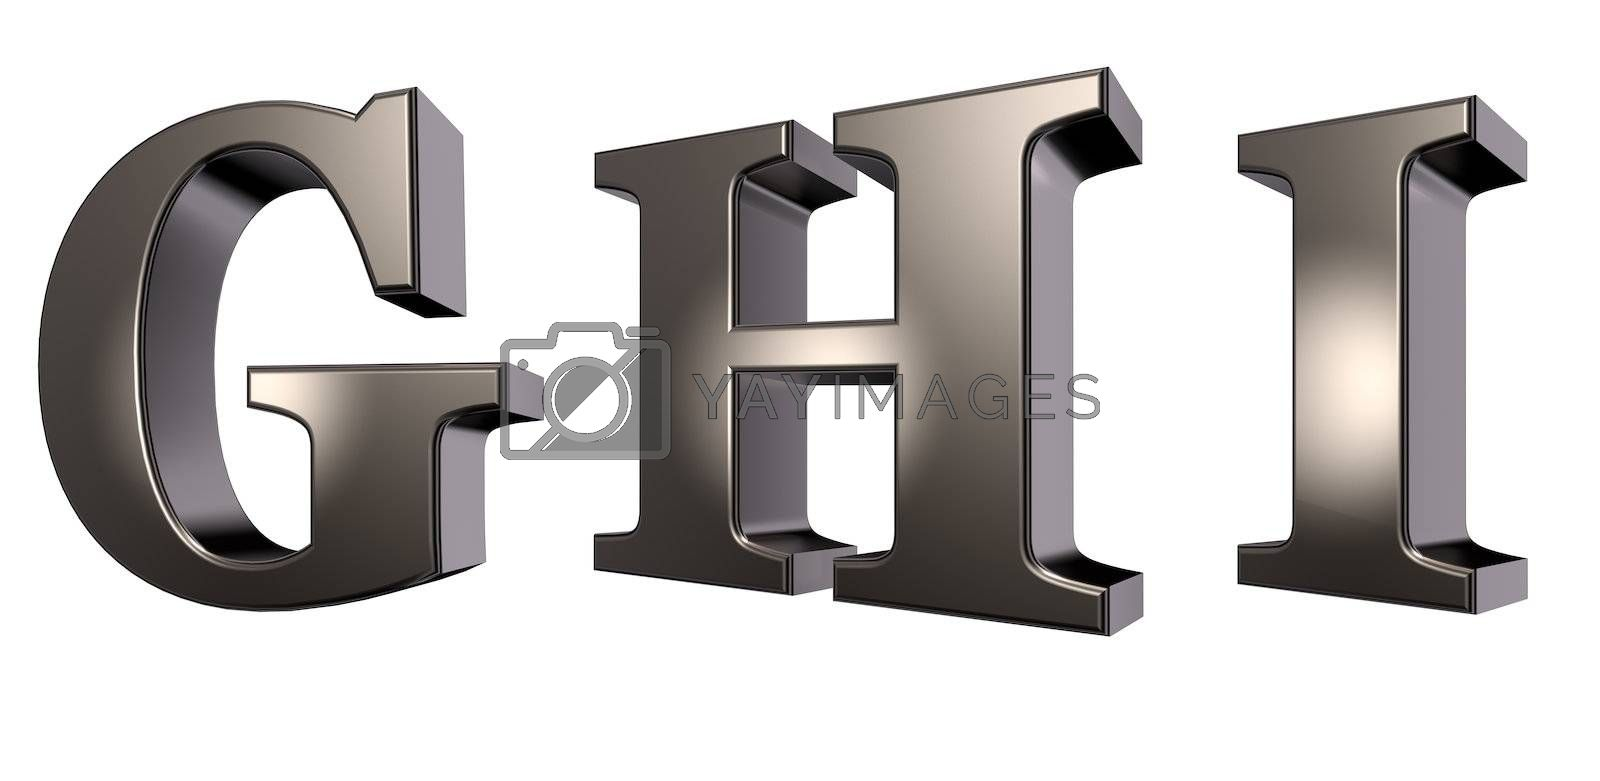 metal  letters g, h and i on white background - 3d illustration